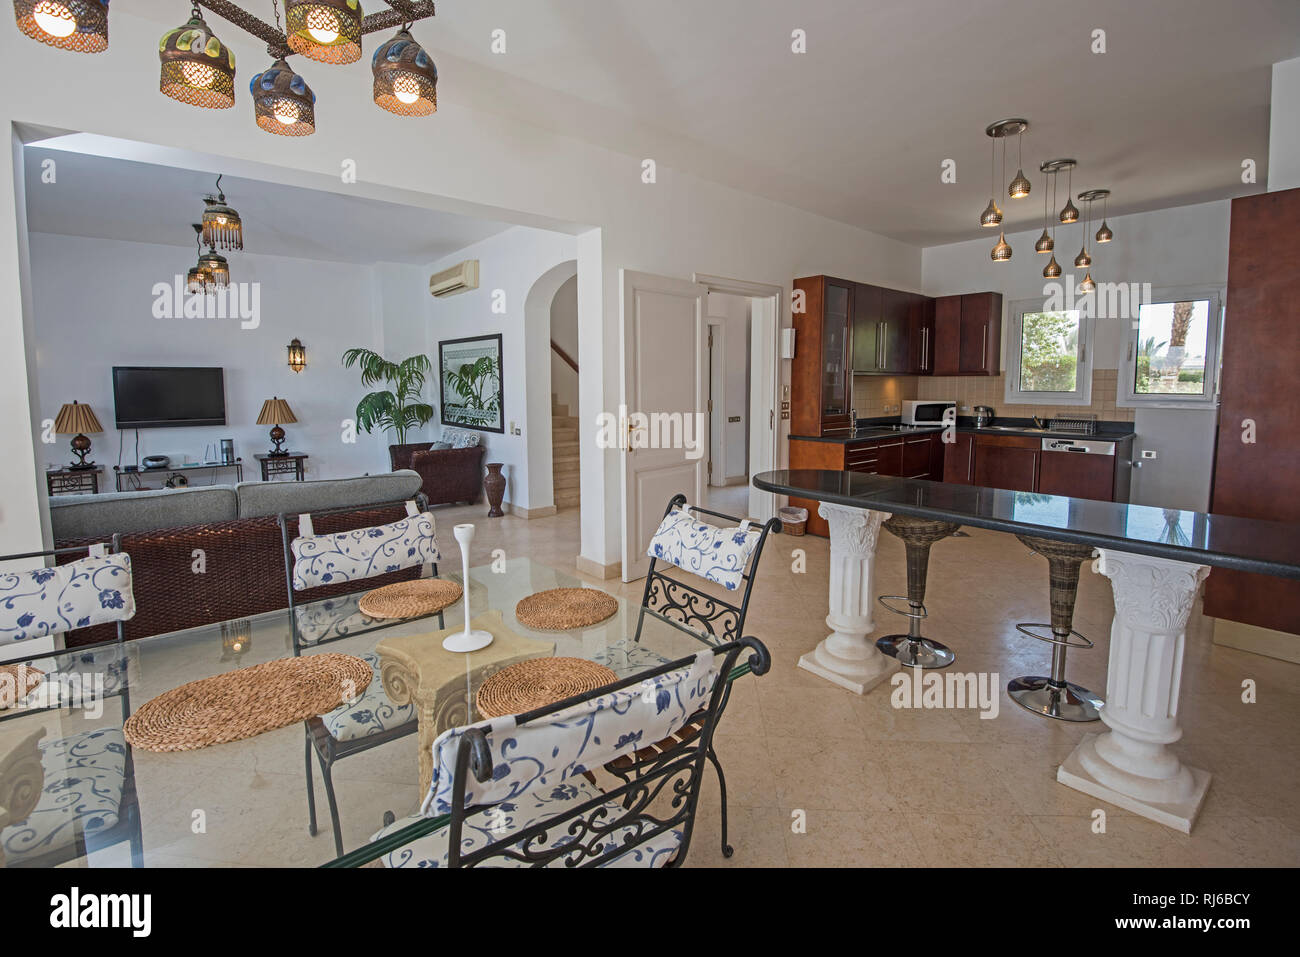 Kitchen and dining area in luxury holiday villa show home ...